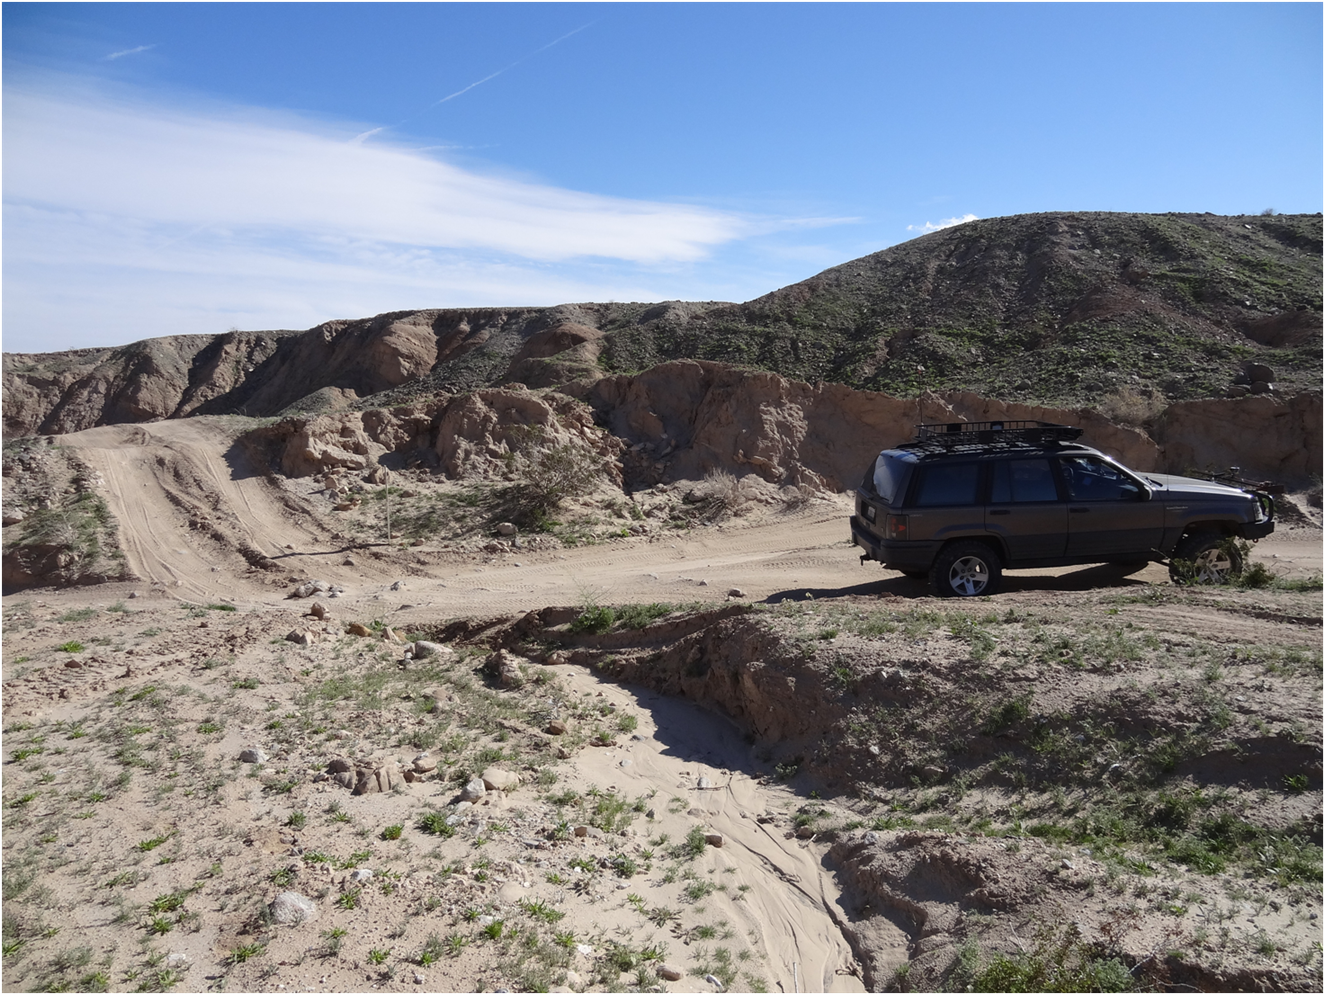 Tectonic Gorge - Ocotillo Wells SVRA - Waypoint 8: Ascending out of the Gorge